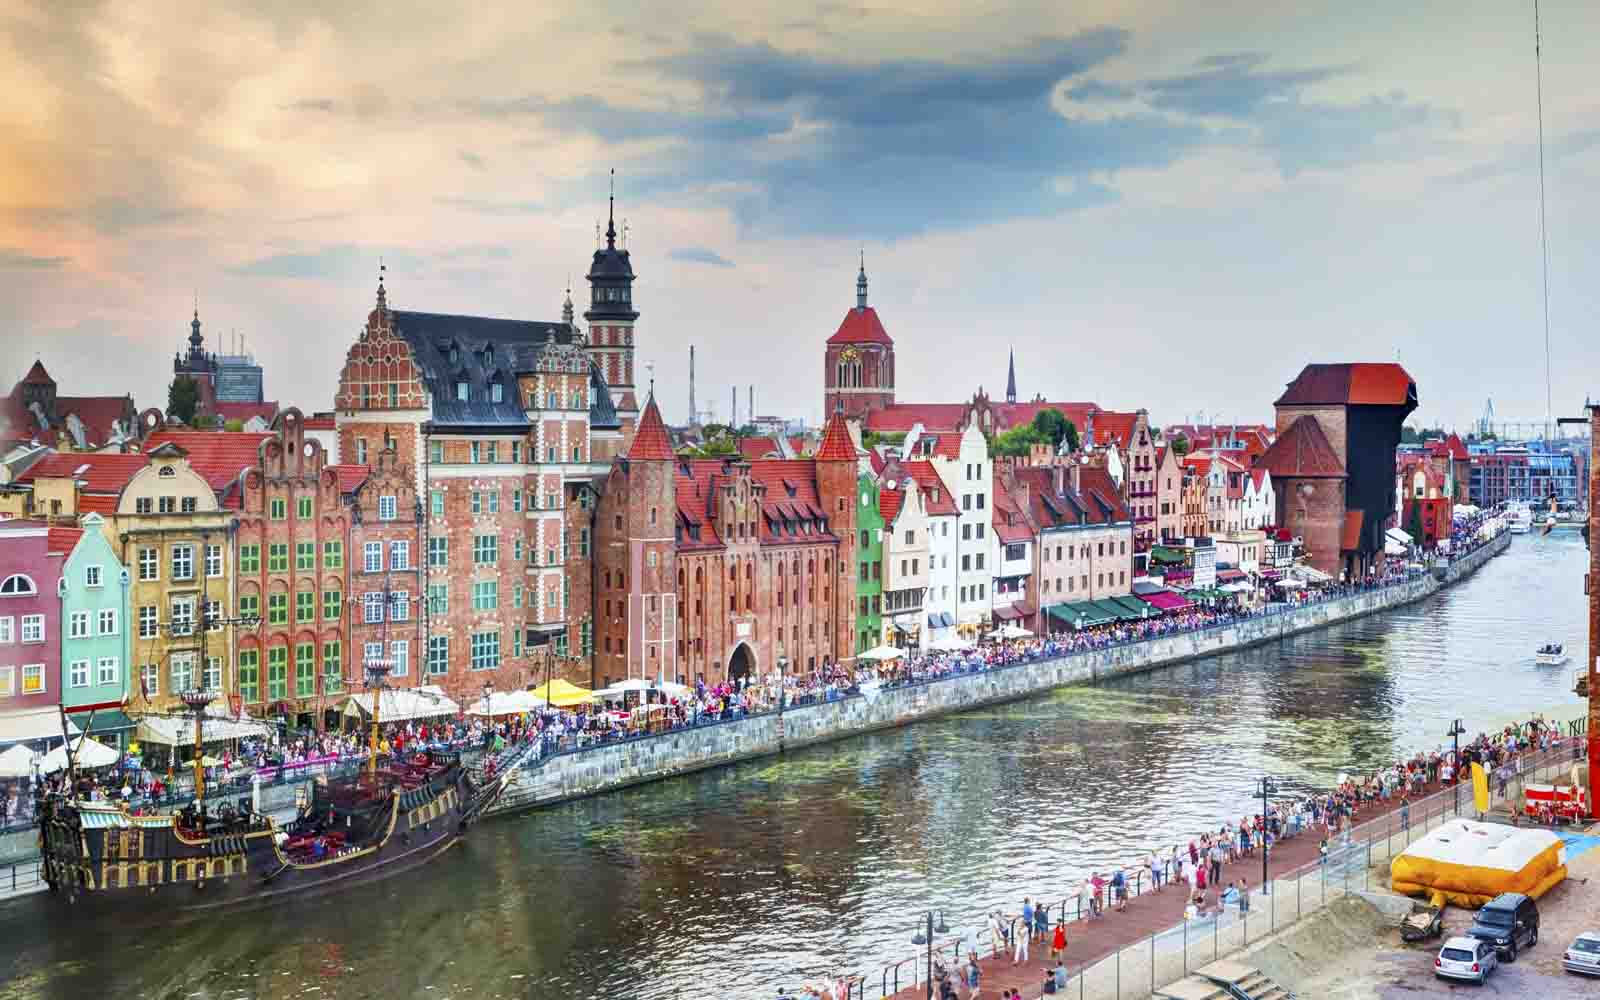 Gdansk old town and Motlawa river, Poland.